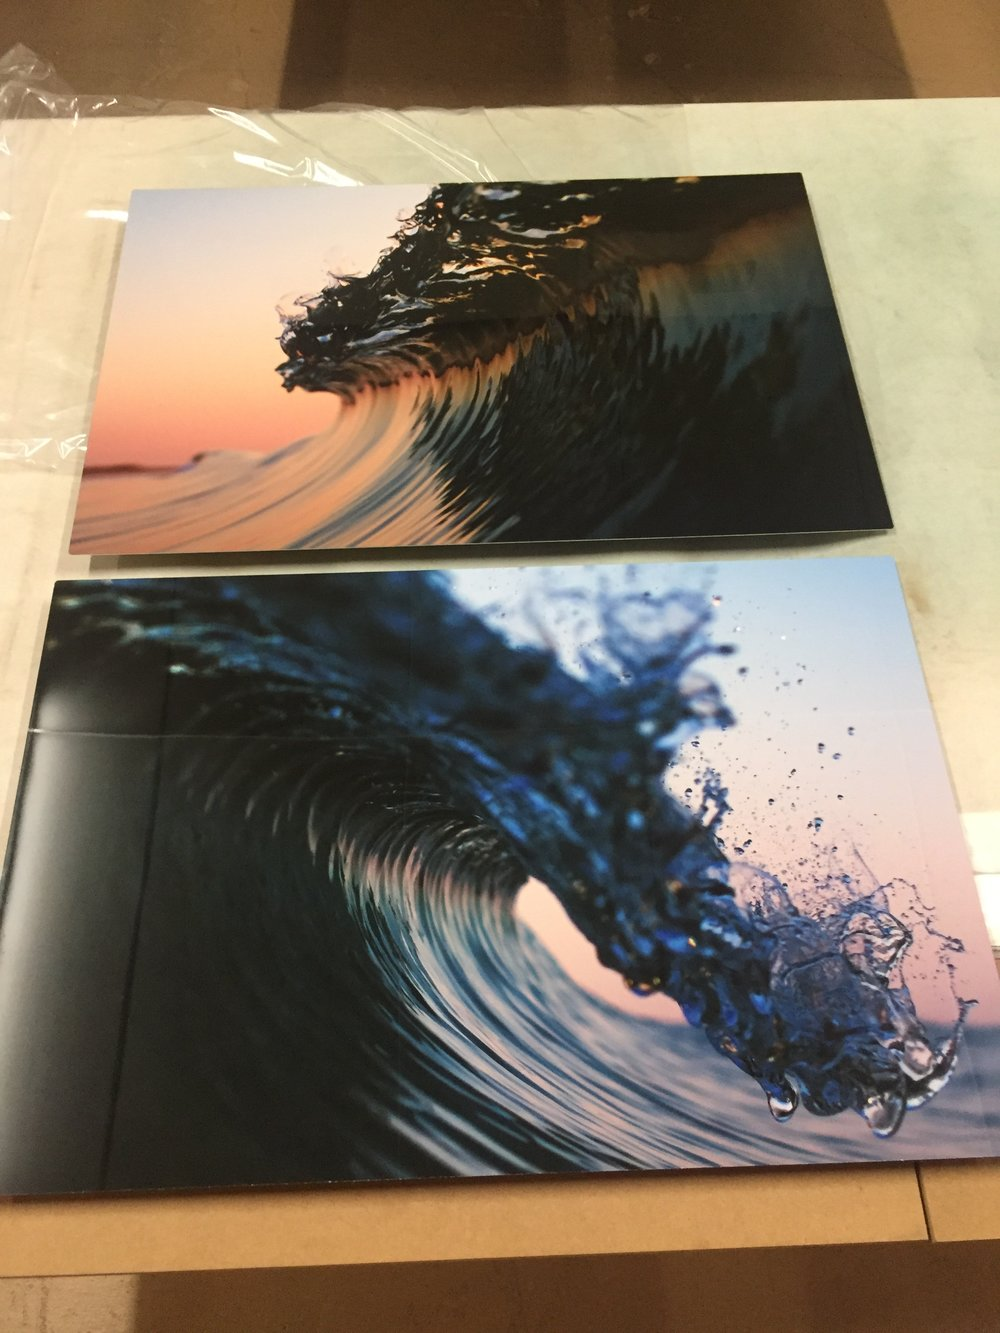 These images are both captured in Vero Beach, Florida. Now sublimated onto Aluminum with a float mount they are ready to hang on a wall. The Aluminum Prints have a tendency to make the water look real, so gazing at these really puts you back in that moment.